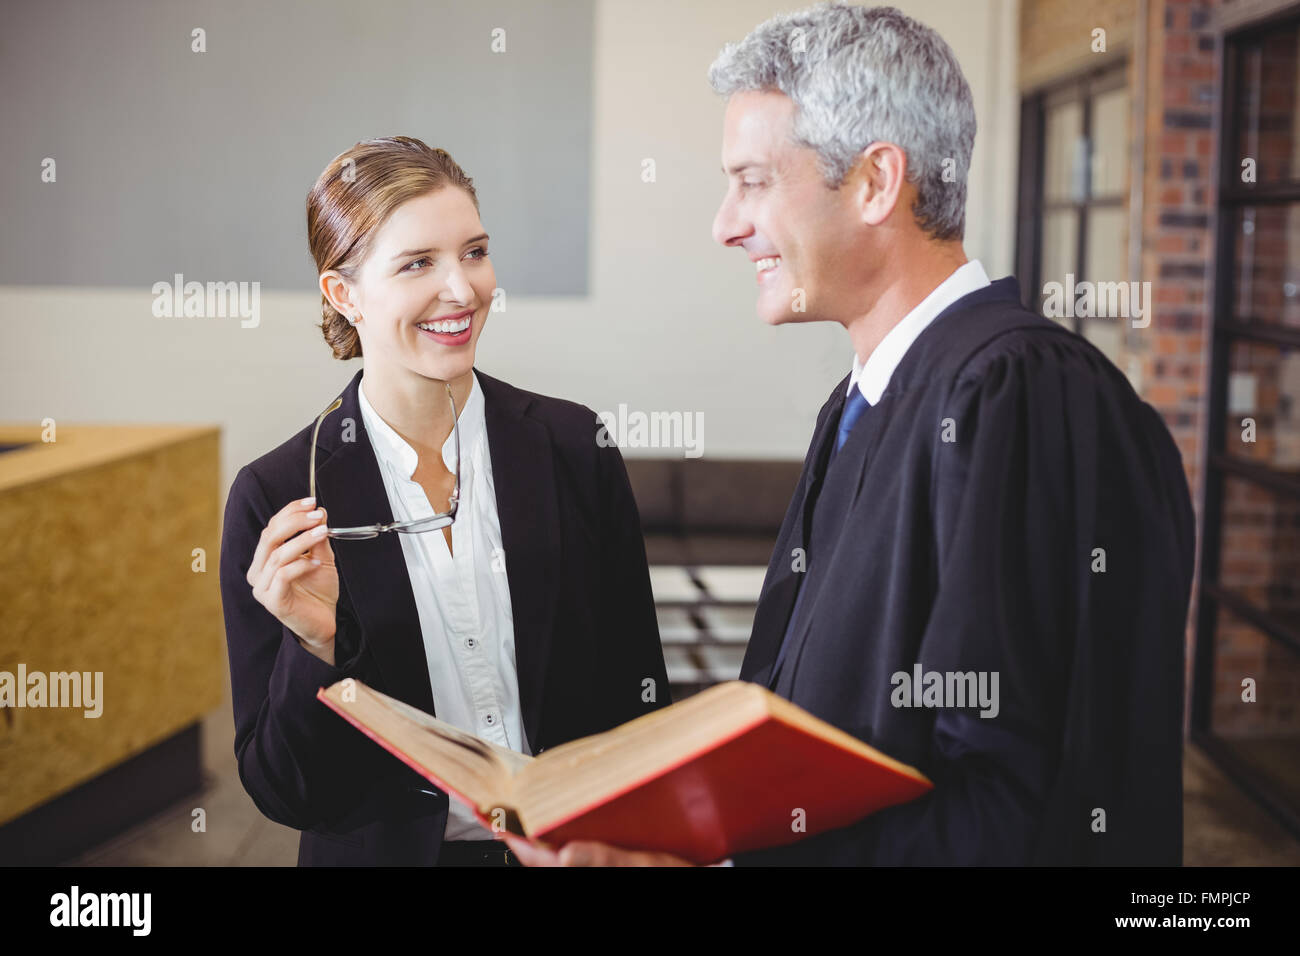 Happy Male lawyer standing by female colleague - Stock Image